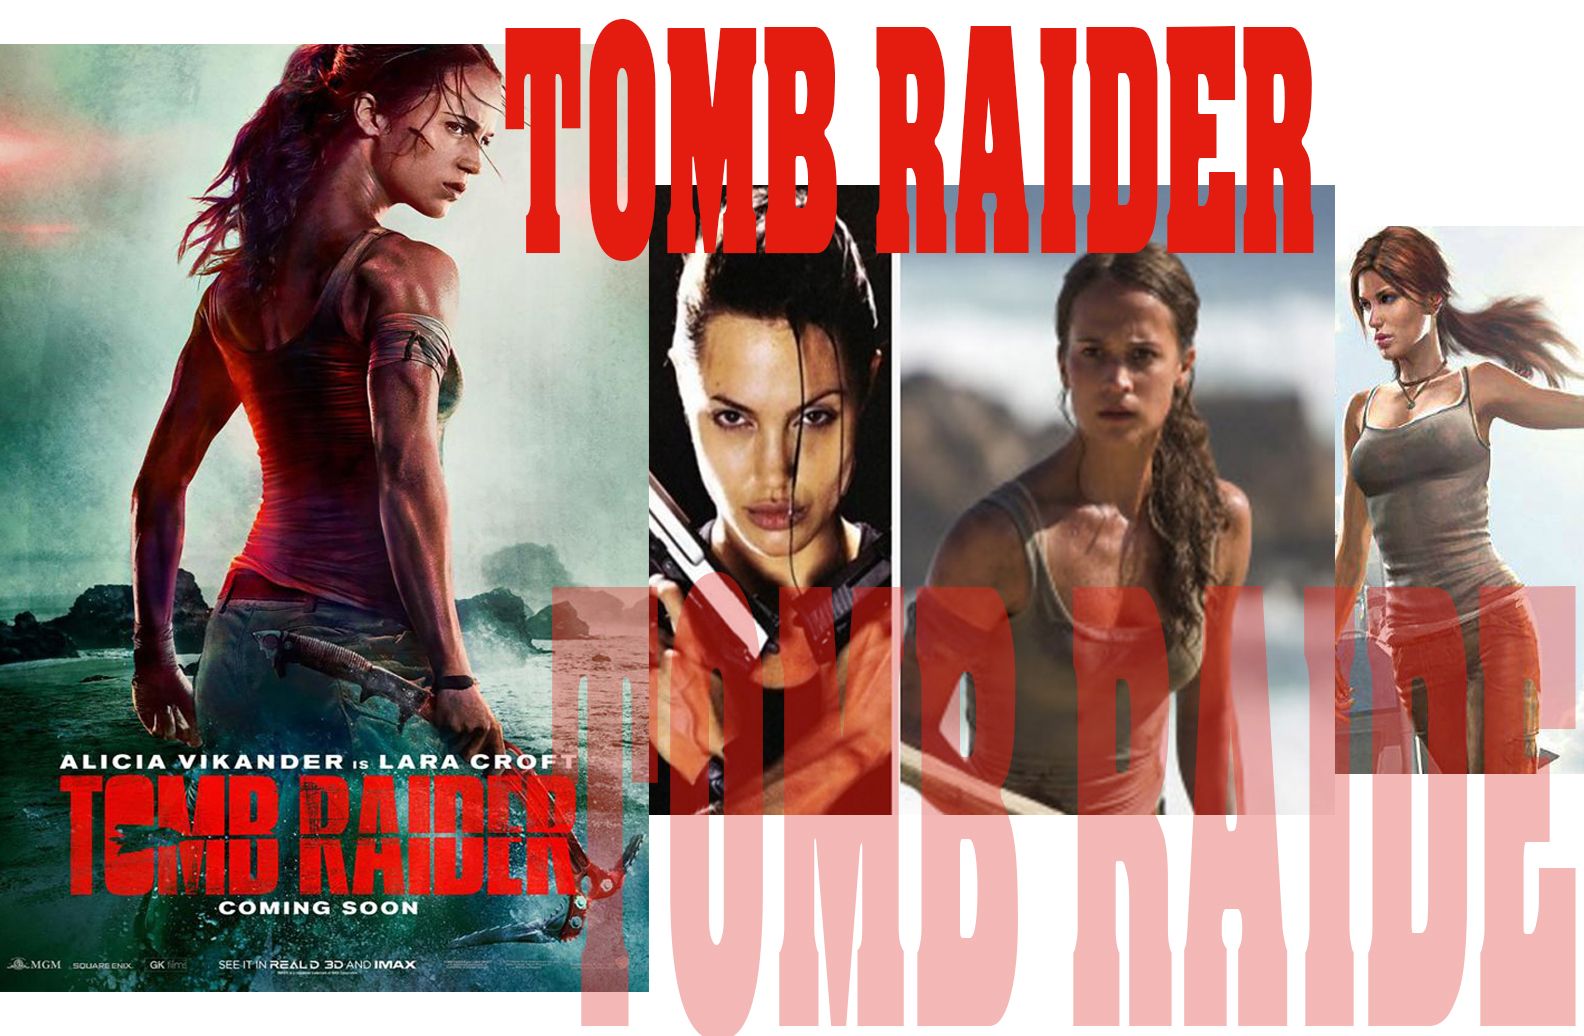 Lara Croft From to cShadow of the Tomb Raiderd And The Movie In